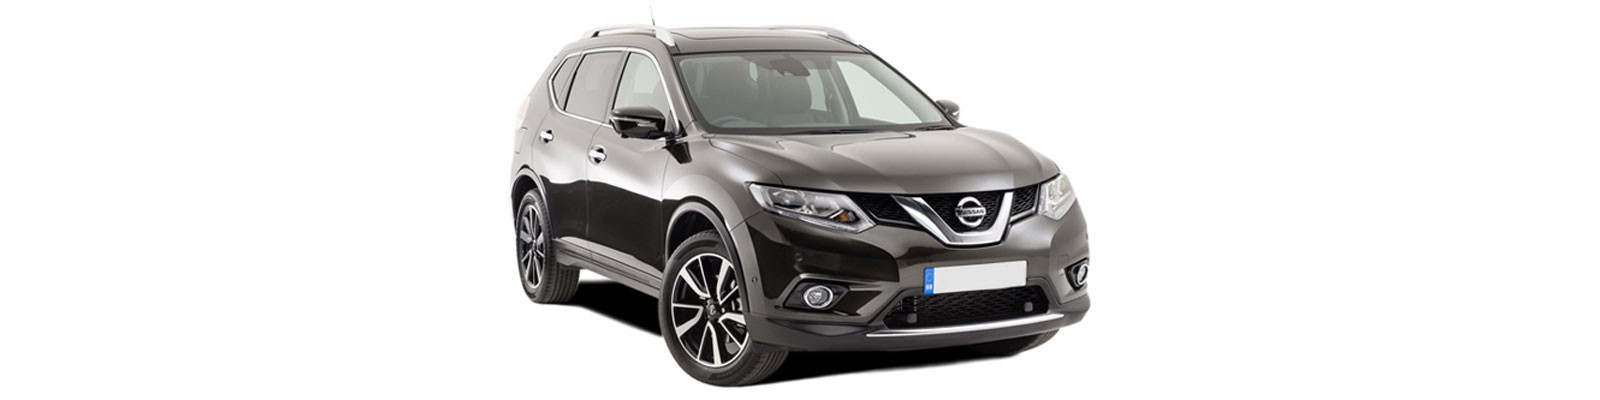 nissan x trail vehicle accessories 4x4 accessories tyres. Black Bedroom Furniture Sets. Home Design Ideas